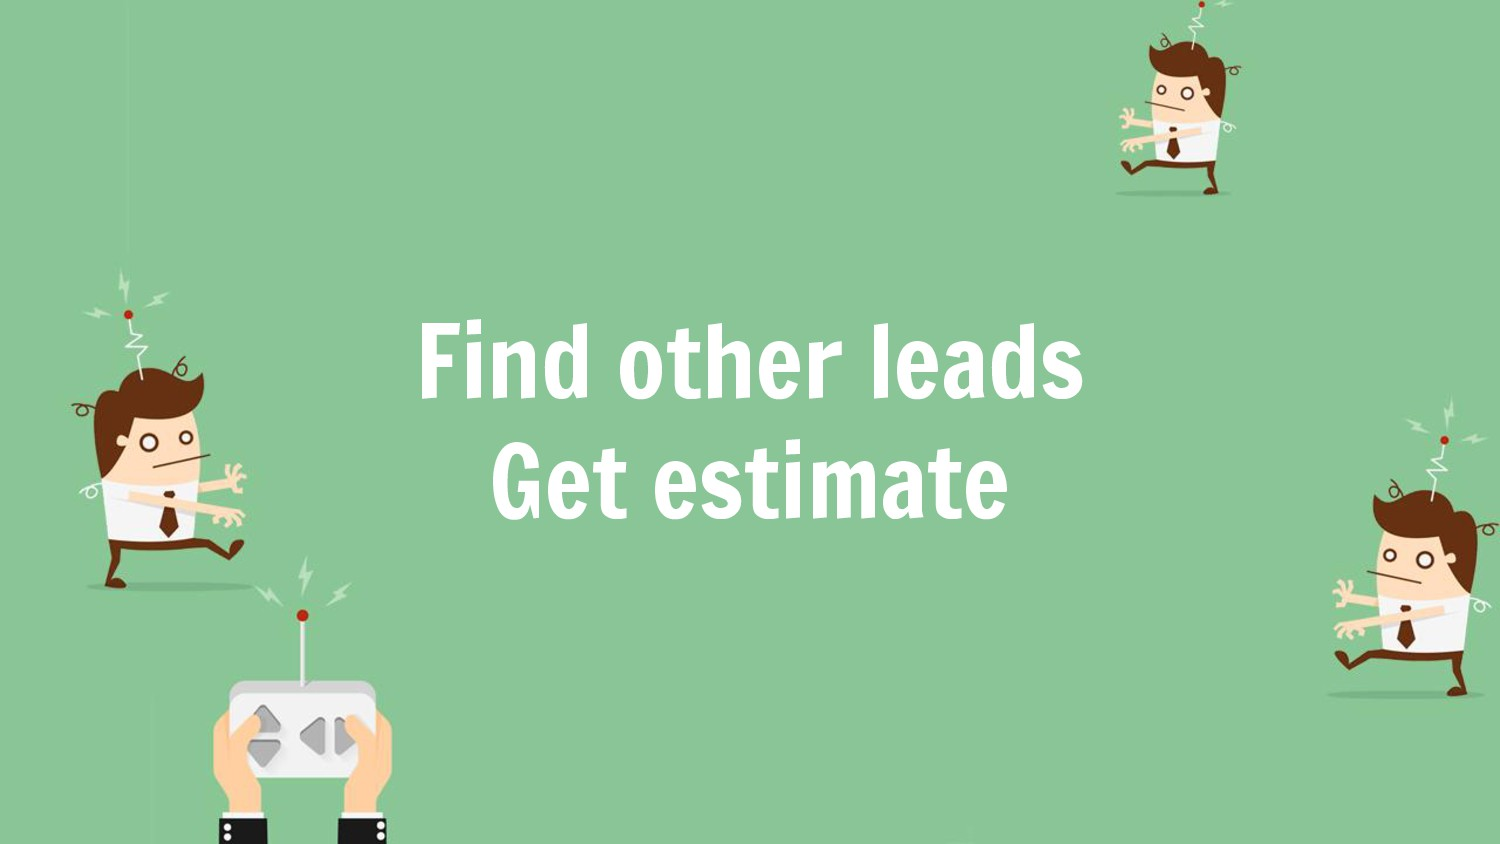 Find other leads Get estimate